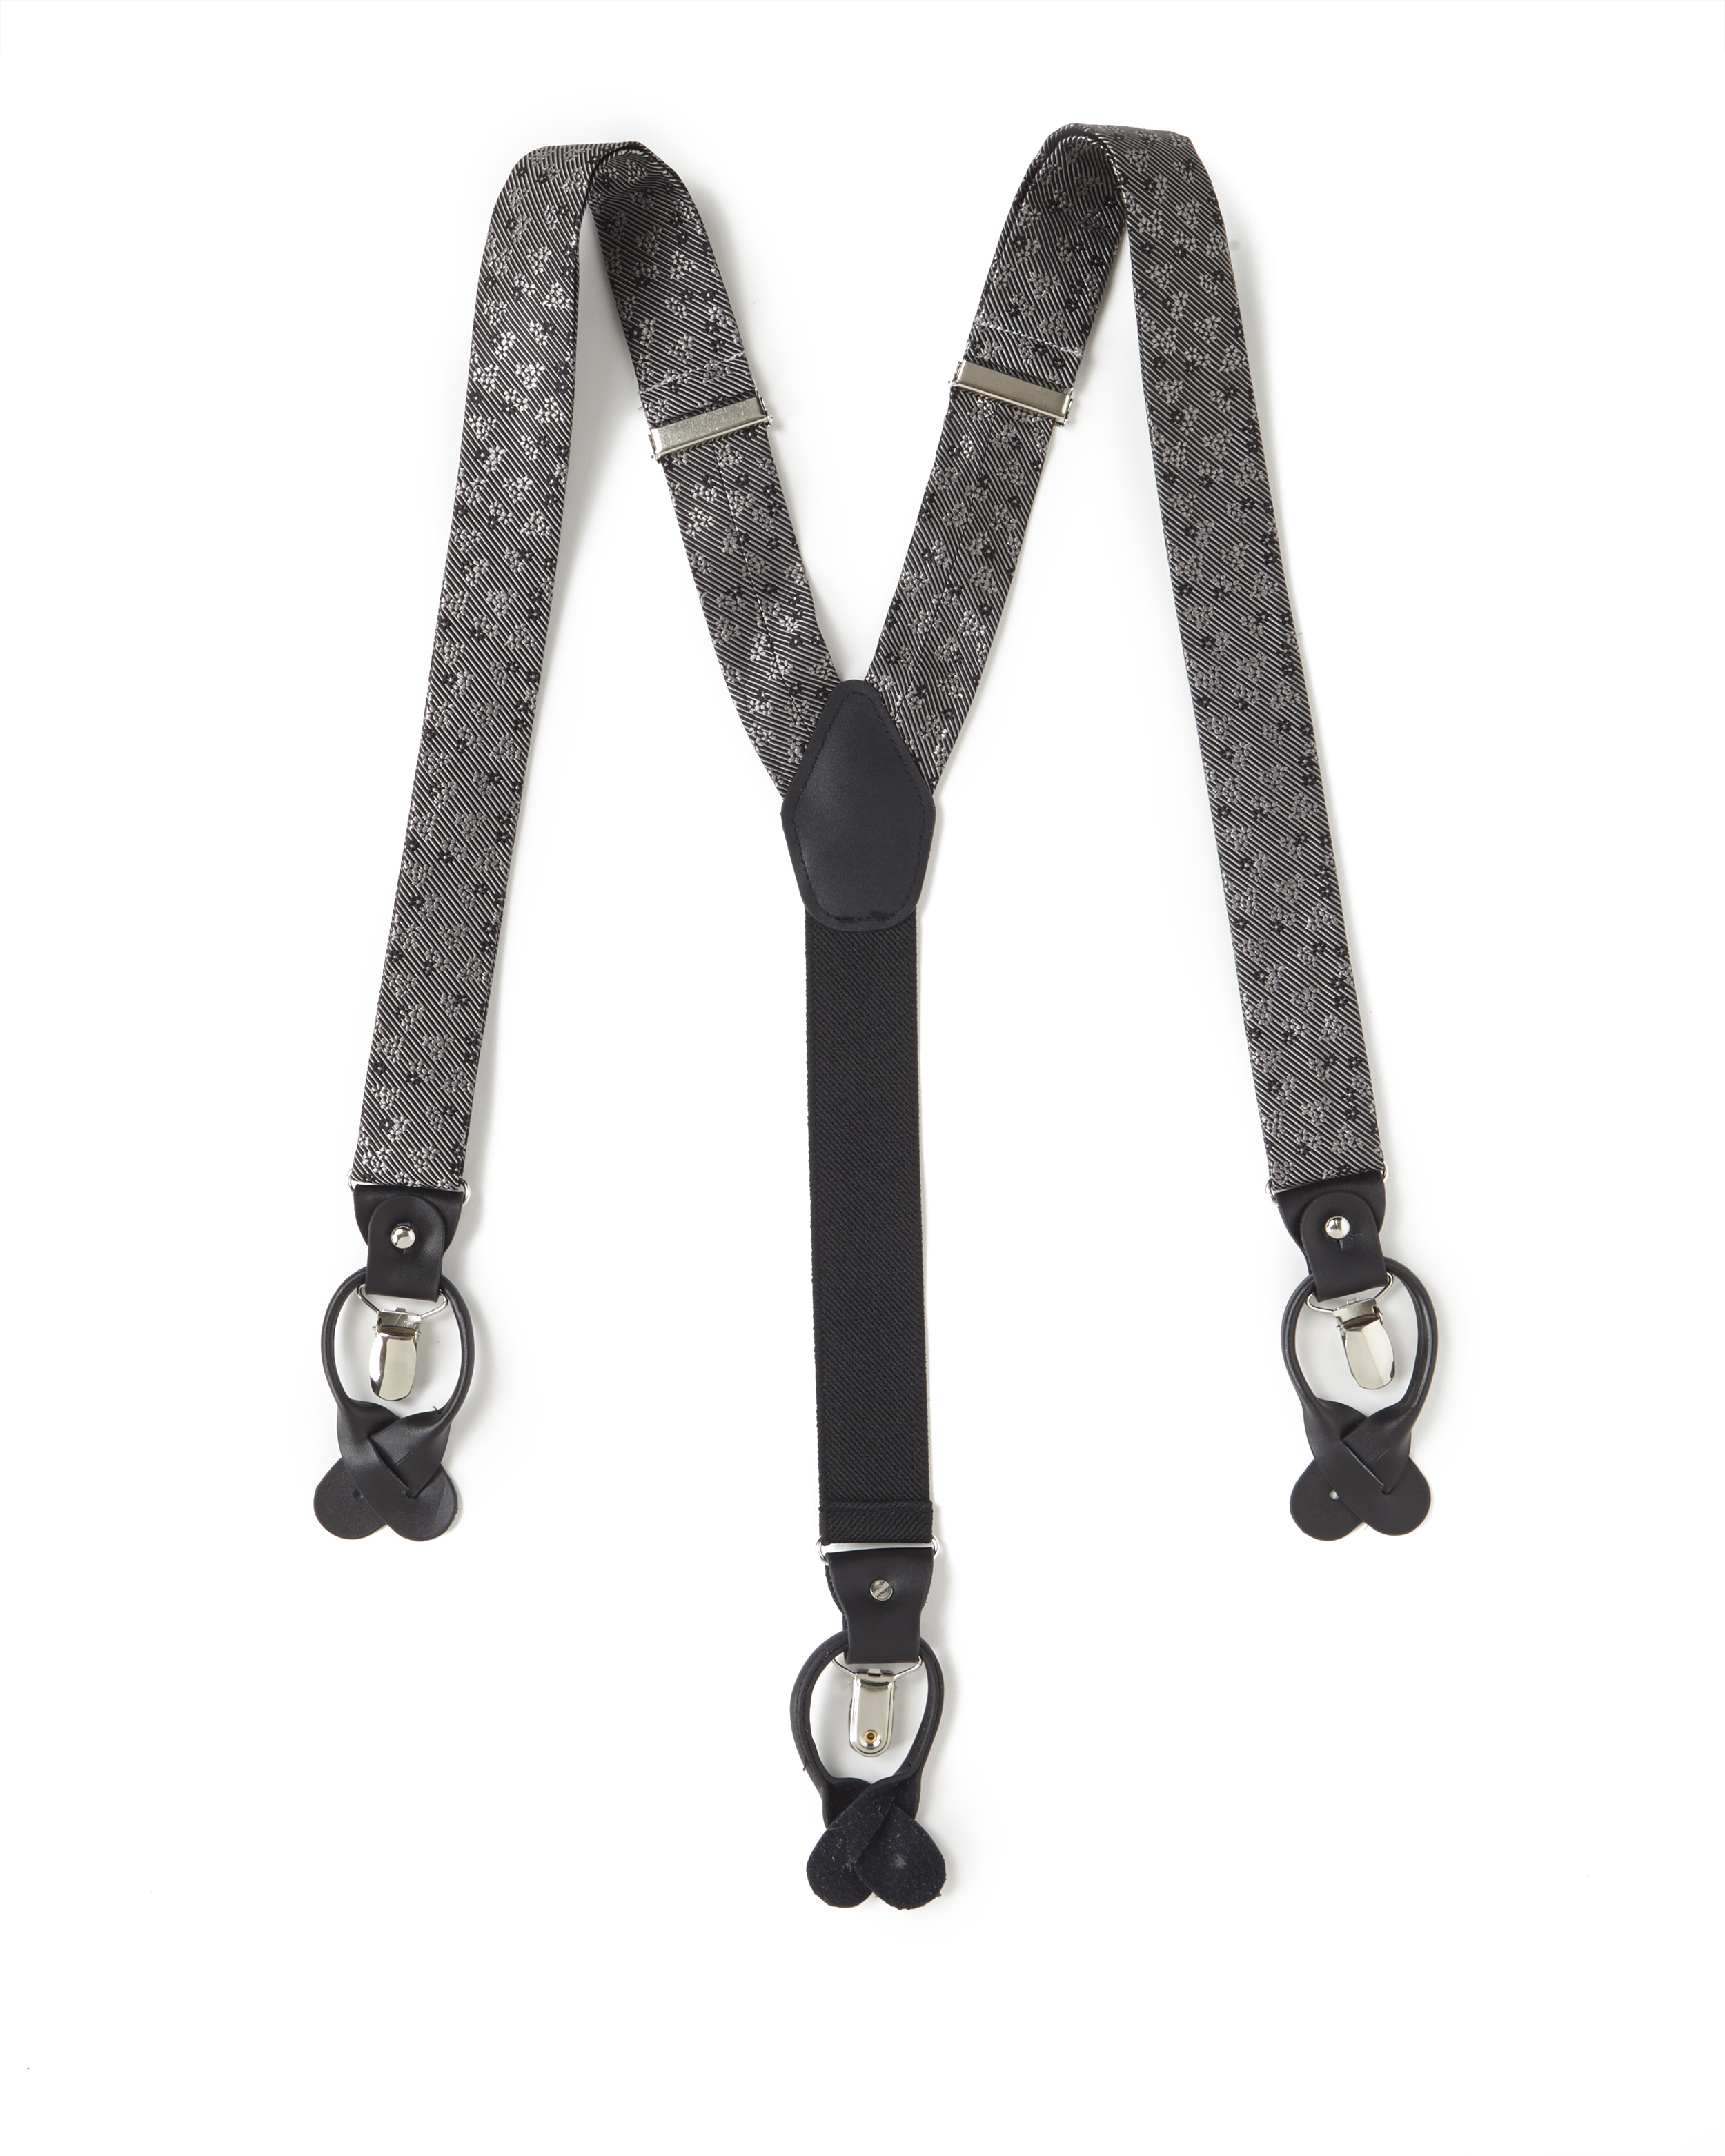 Check out the matching suspender!